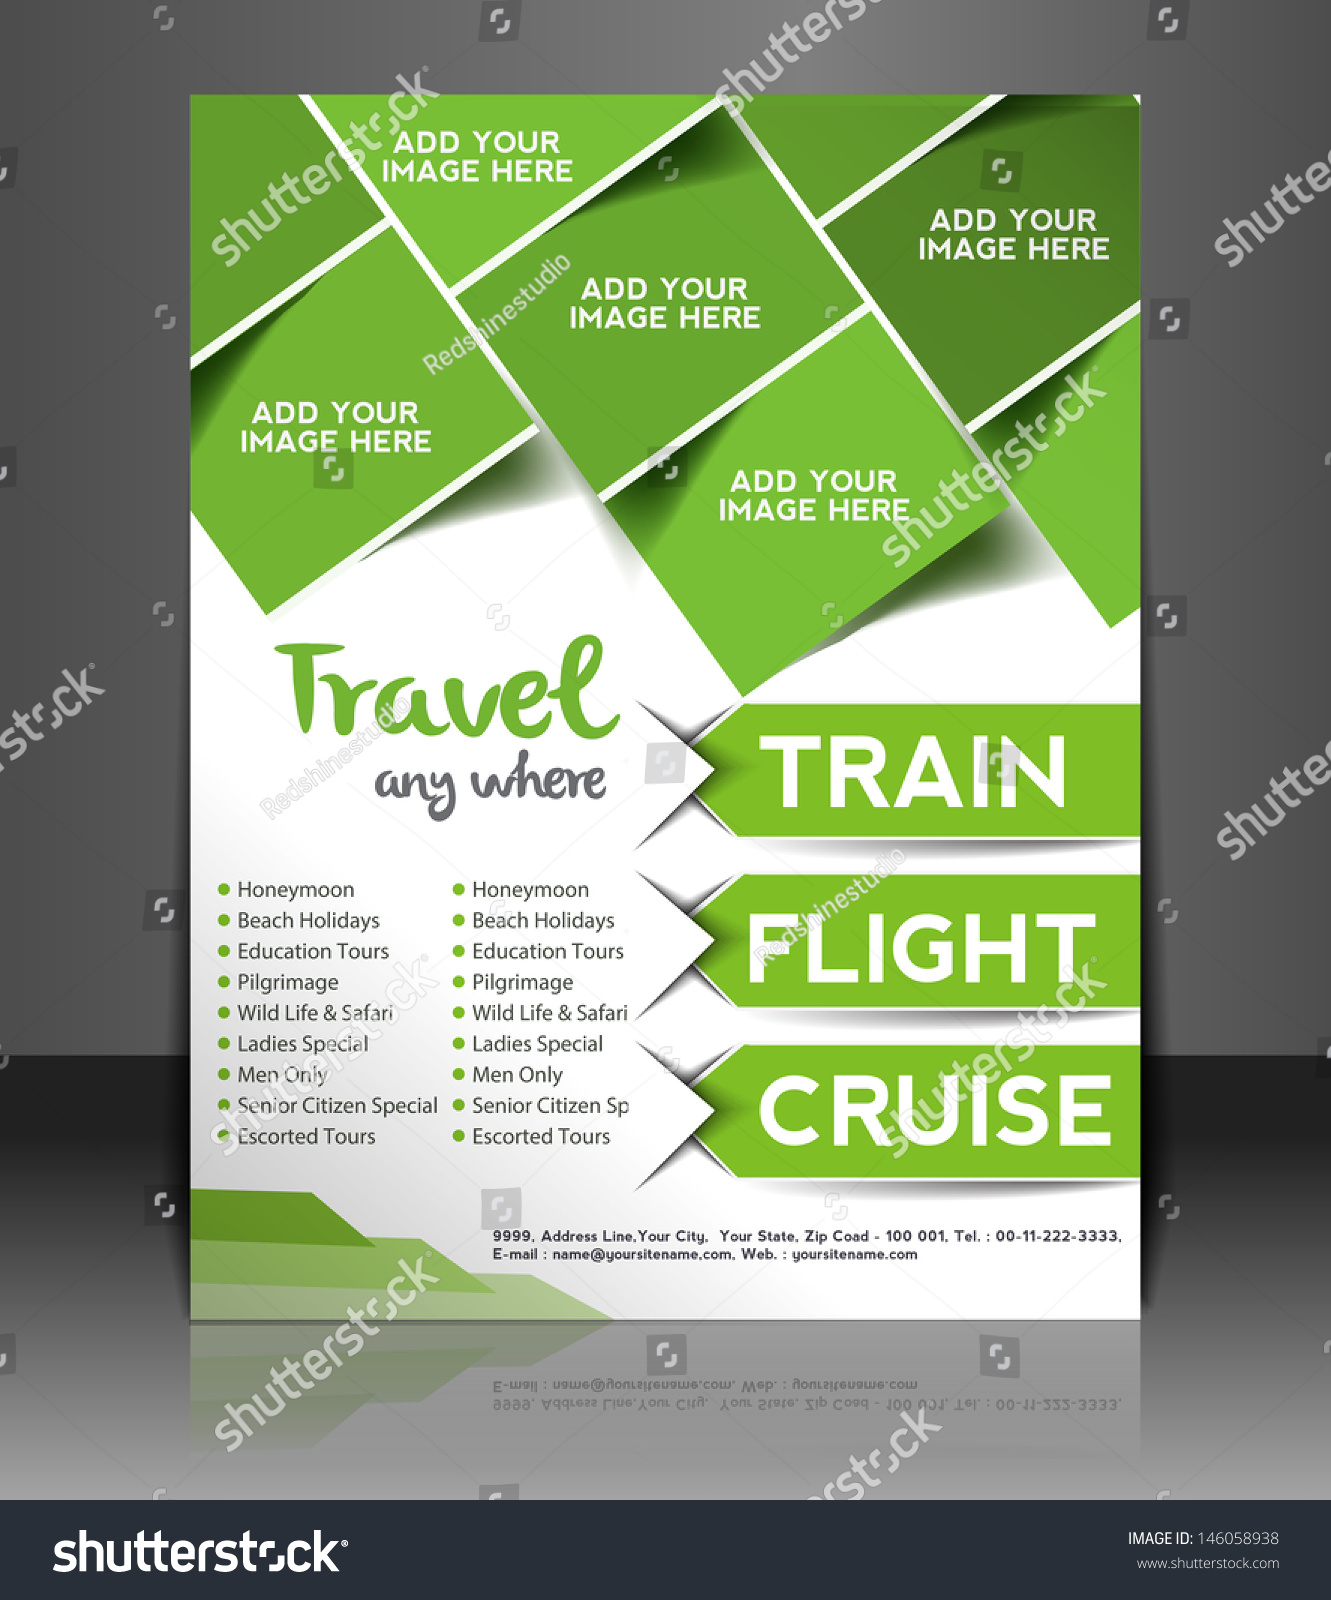 Advertising Poster Templates Training Flyer Template Free Free – Advertising Poster Templates